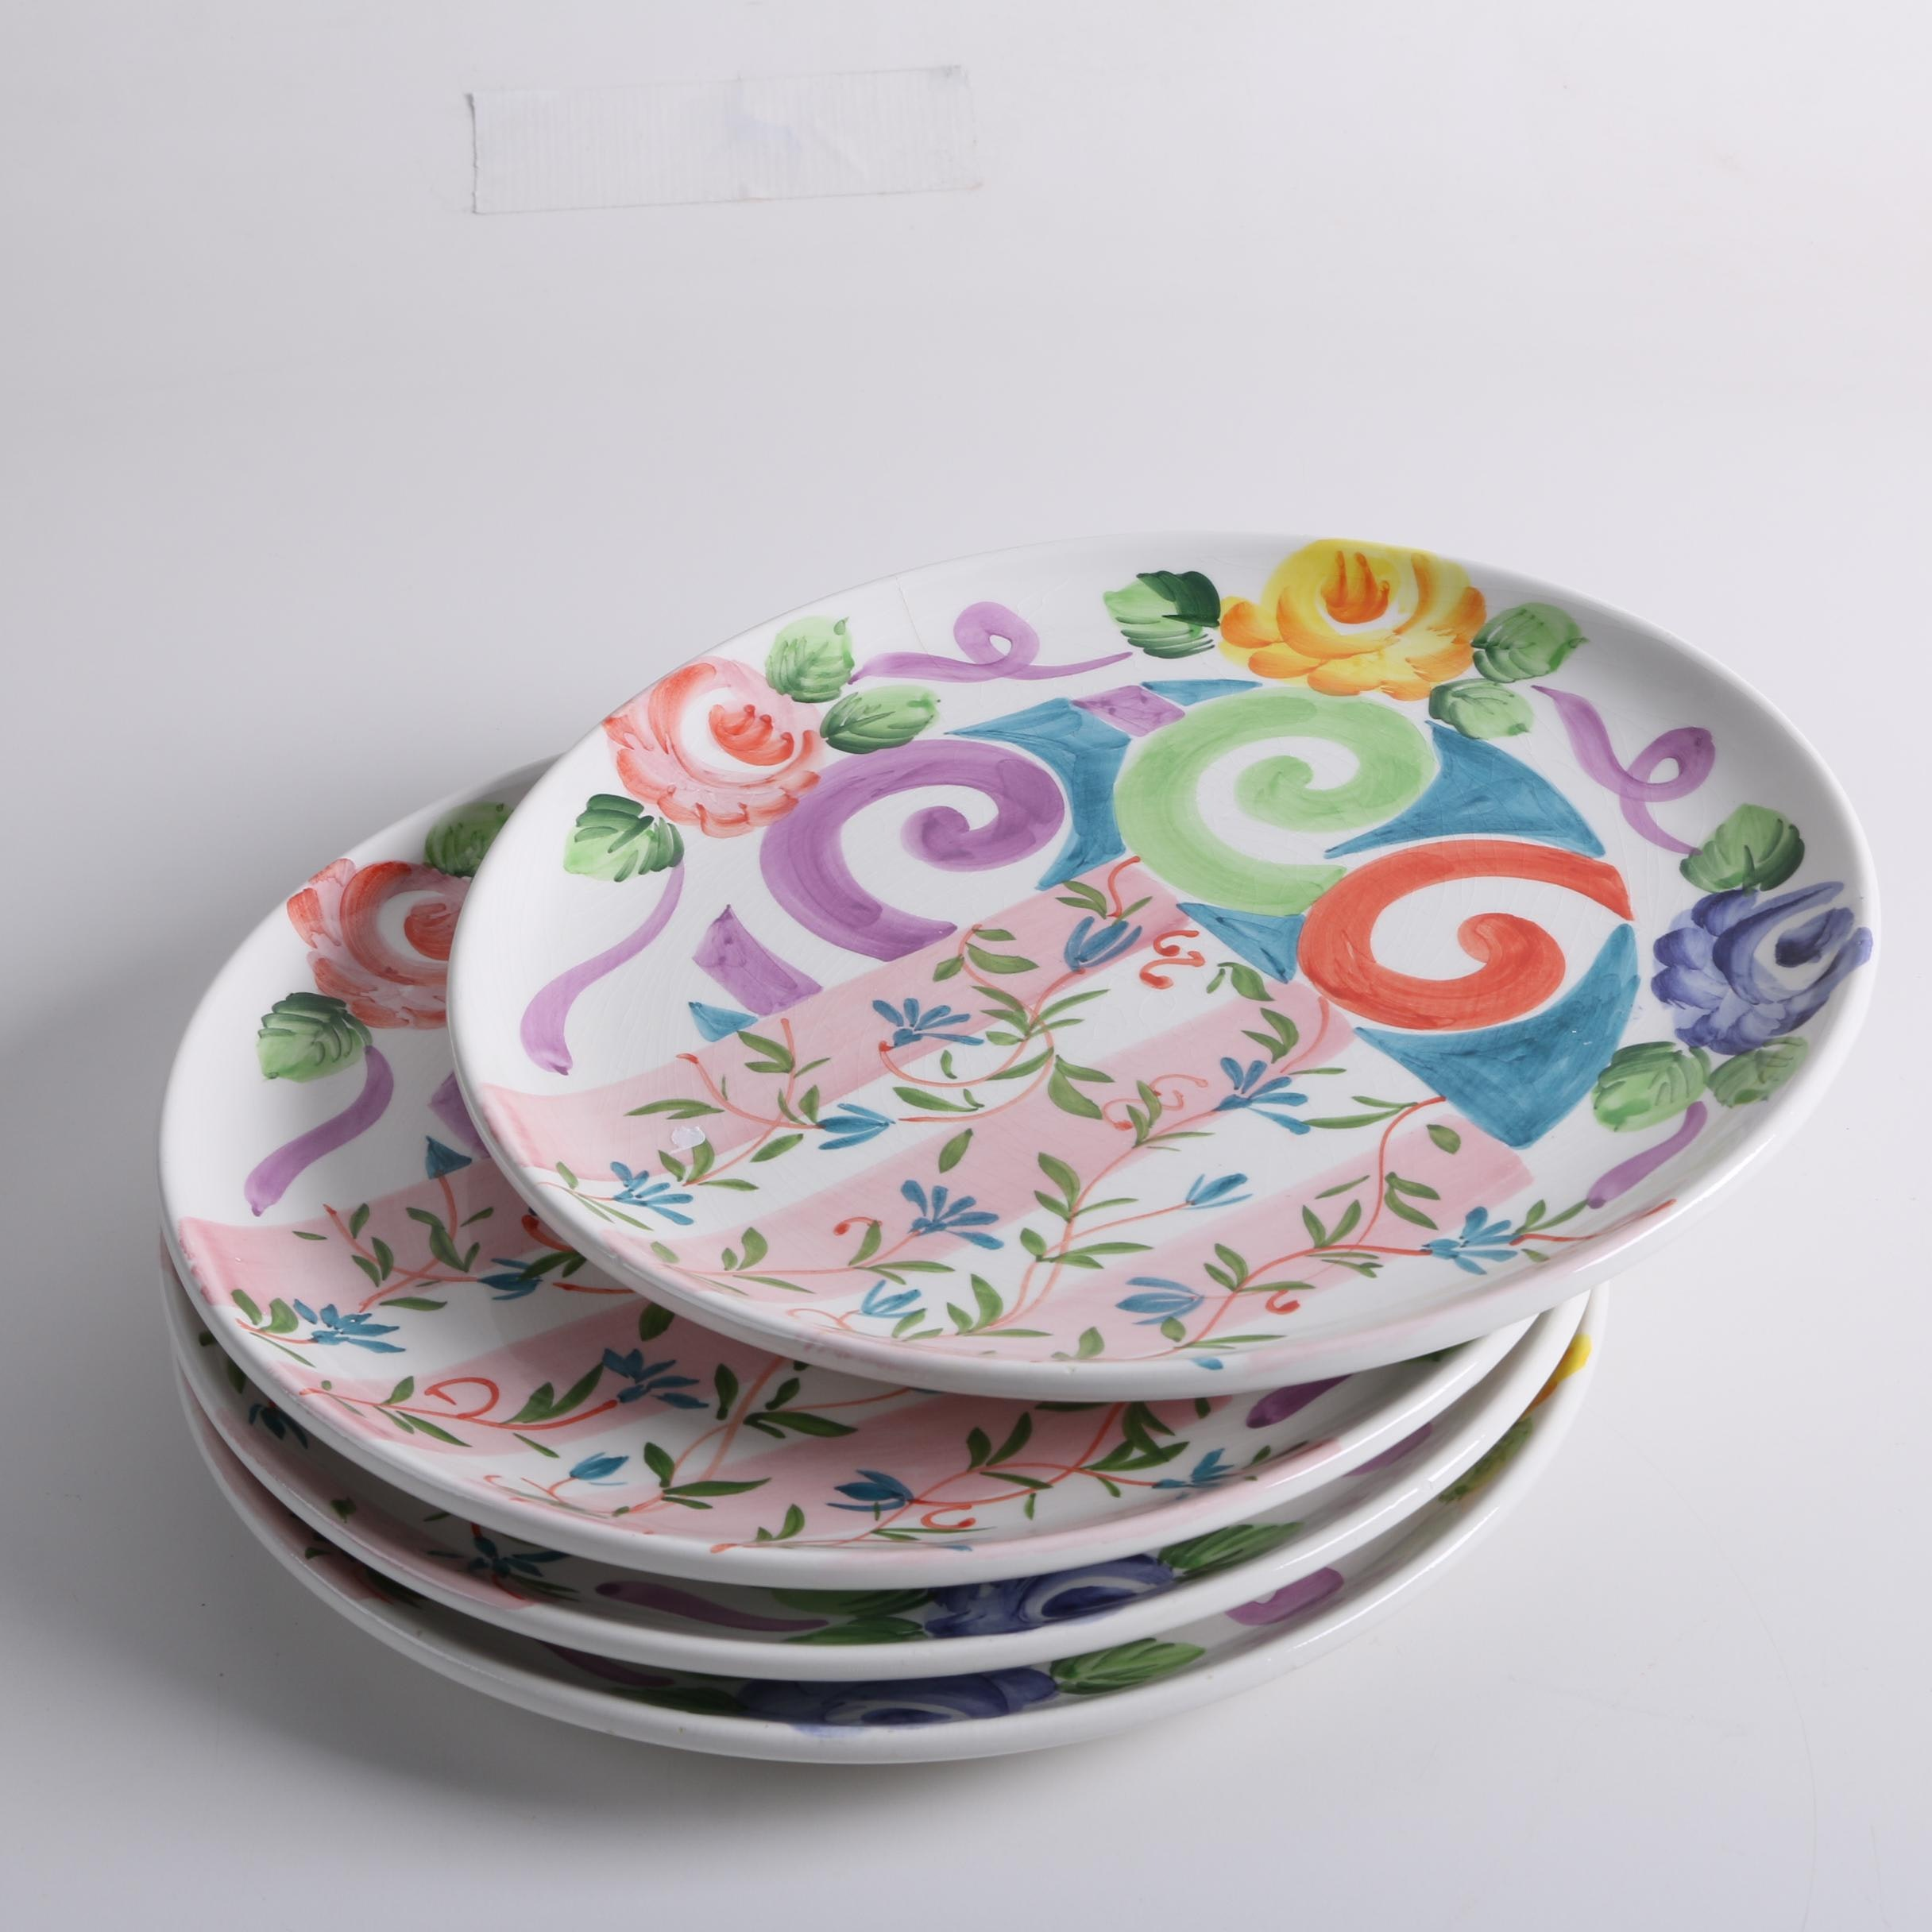 Colorful Hand-Painted Italian Dinner Plates ... & Colorful Hand-Painted Italian Dinner Plates : EBTH